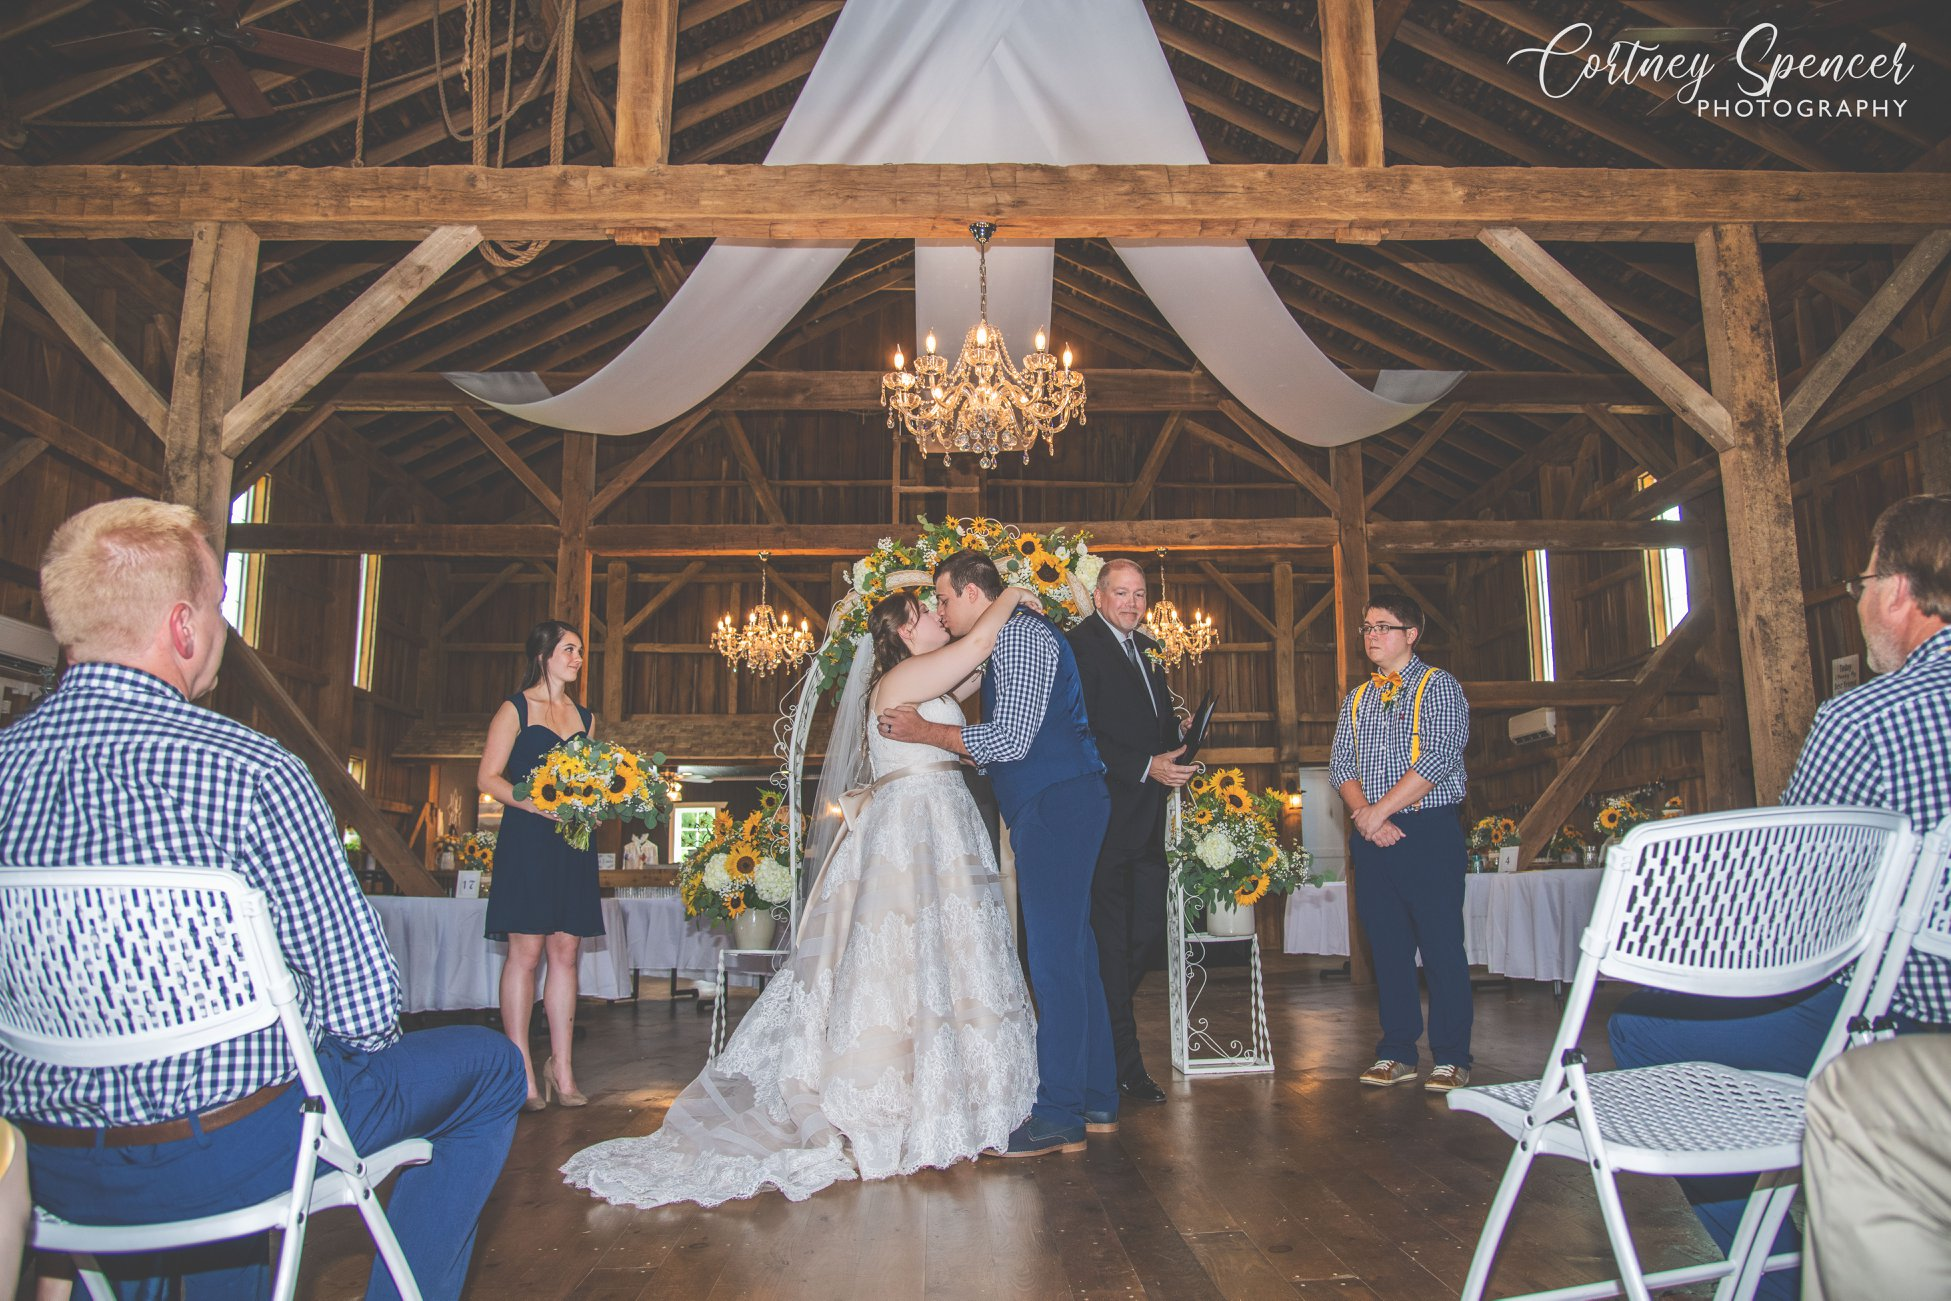 Wedding at Rock Run Creek Barn in Goshen IN